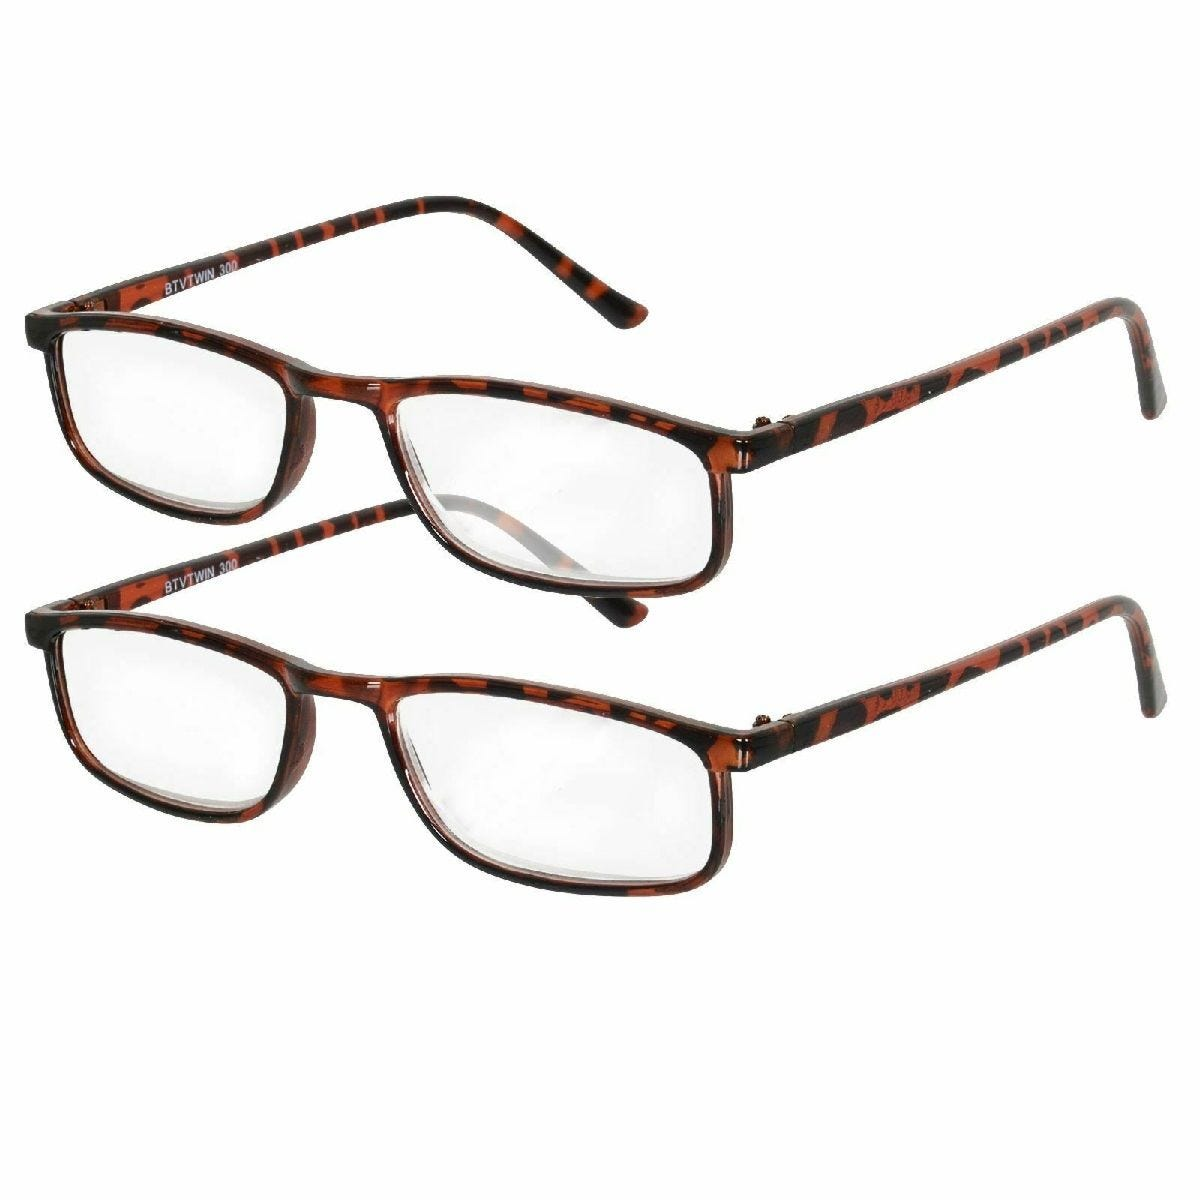 Betaview Duo Pack Strength 2.5 Unisex Reading Glasses - Tortoiseshell